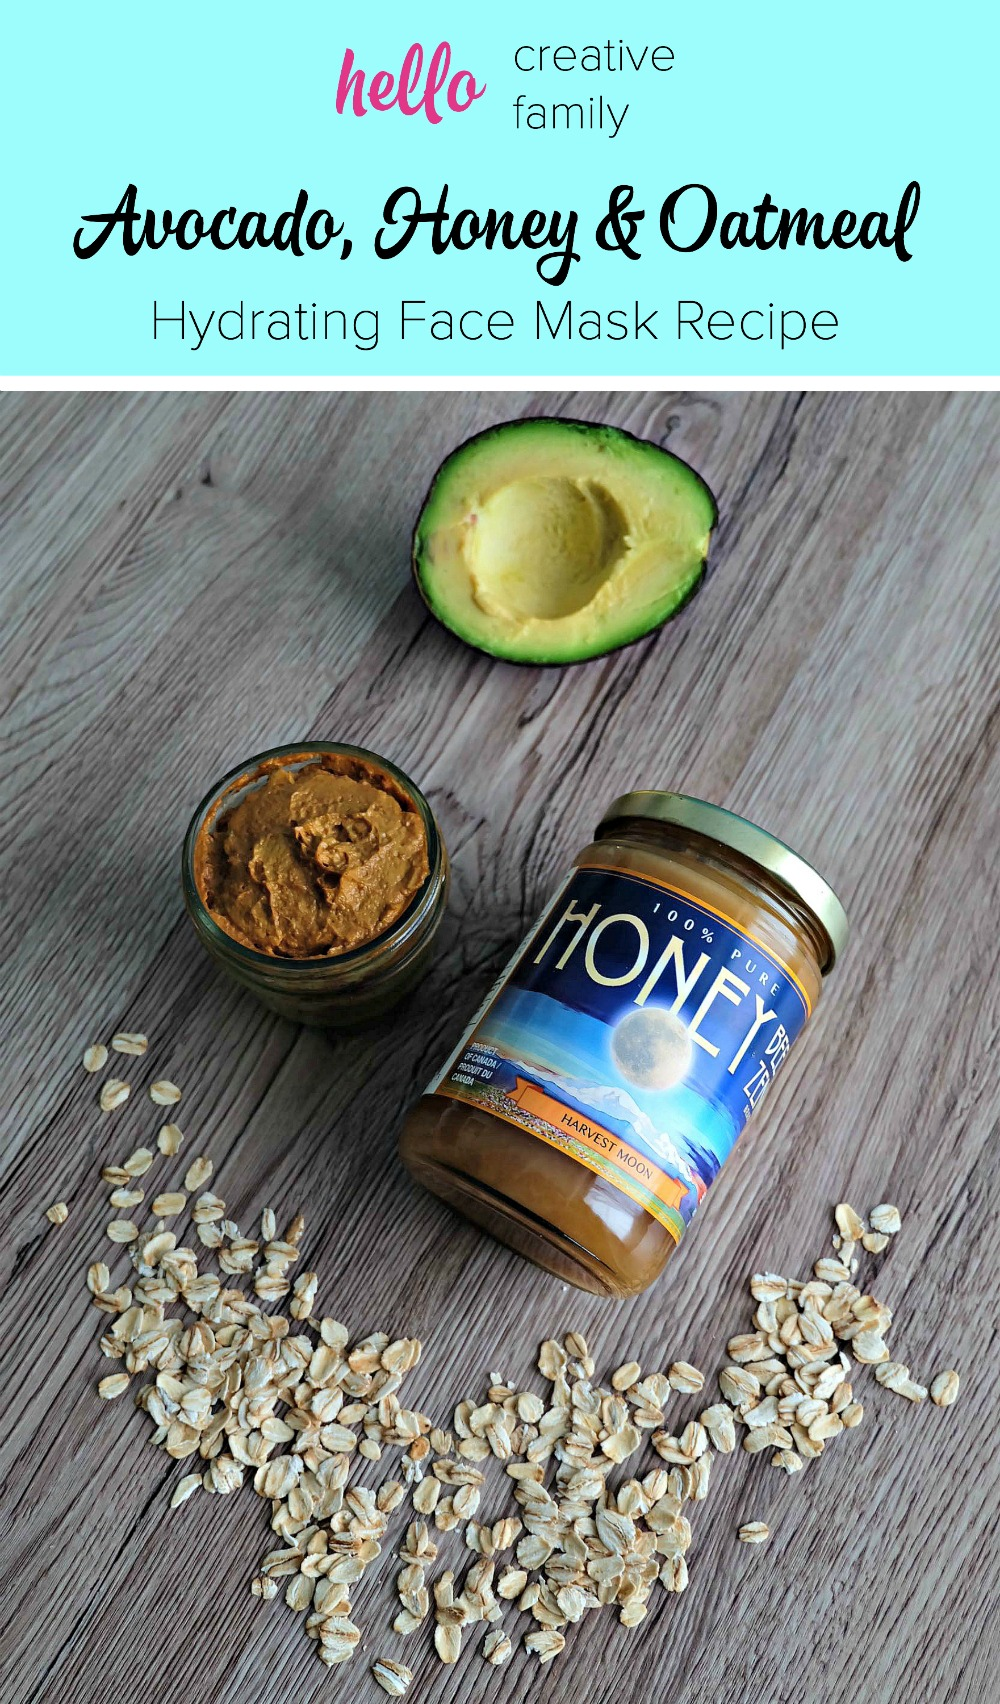 If your face is feeling dry, you won't want to miss this nourishing DIY Face Mask! Made with avocado, honey and oatmeal, this hydrating face mask recipe will have your skin glowing!